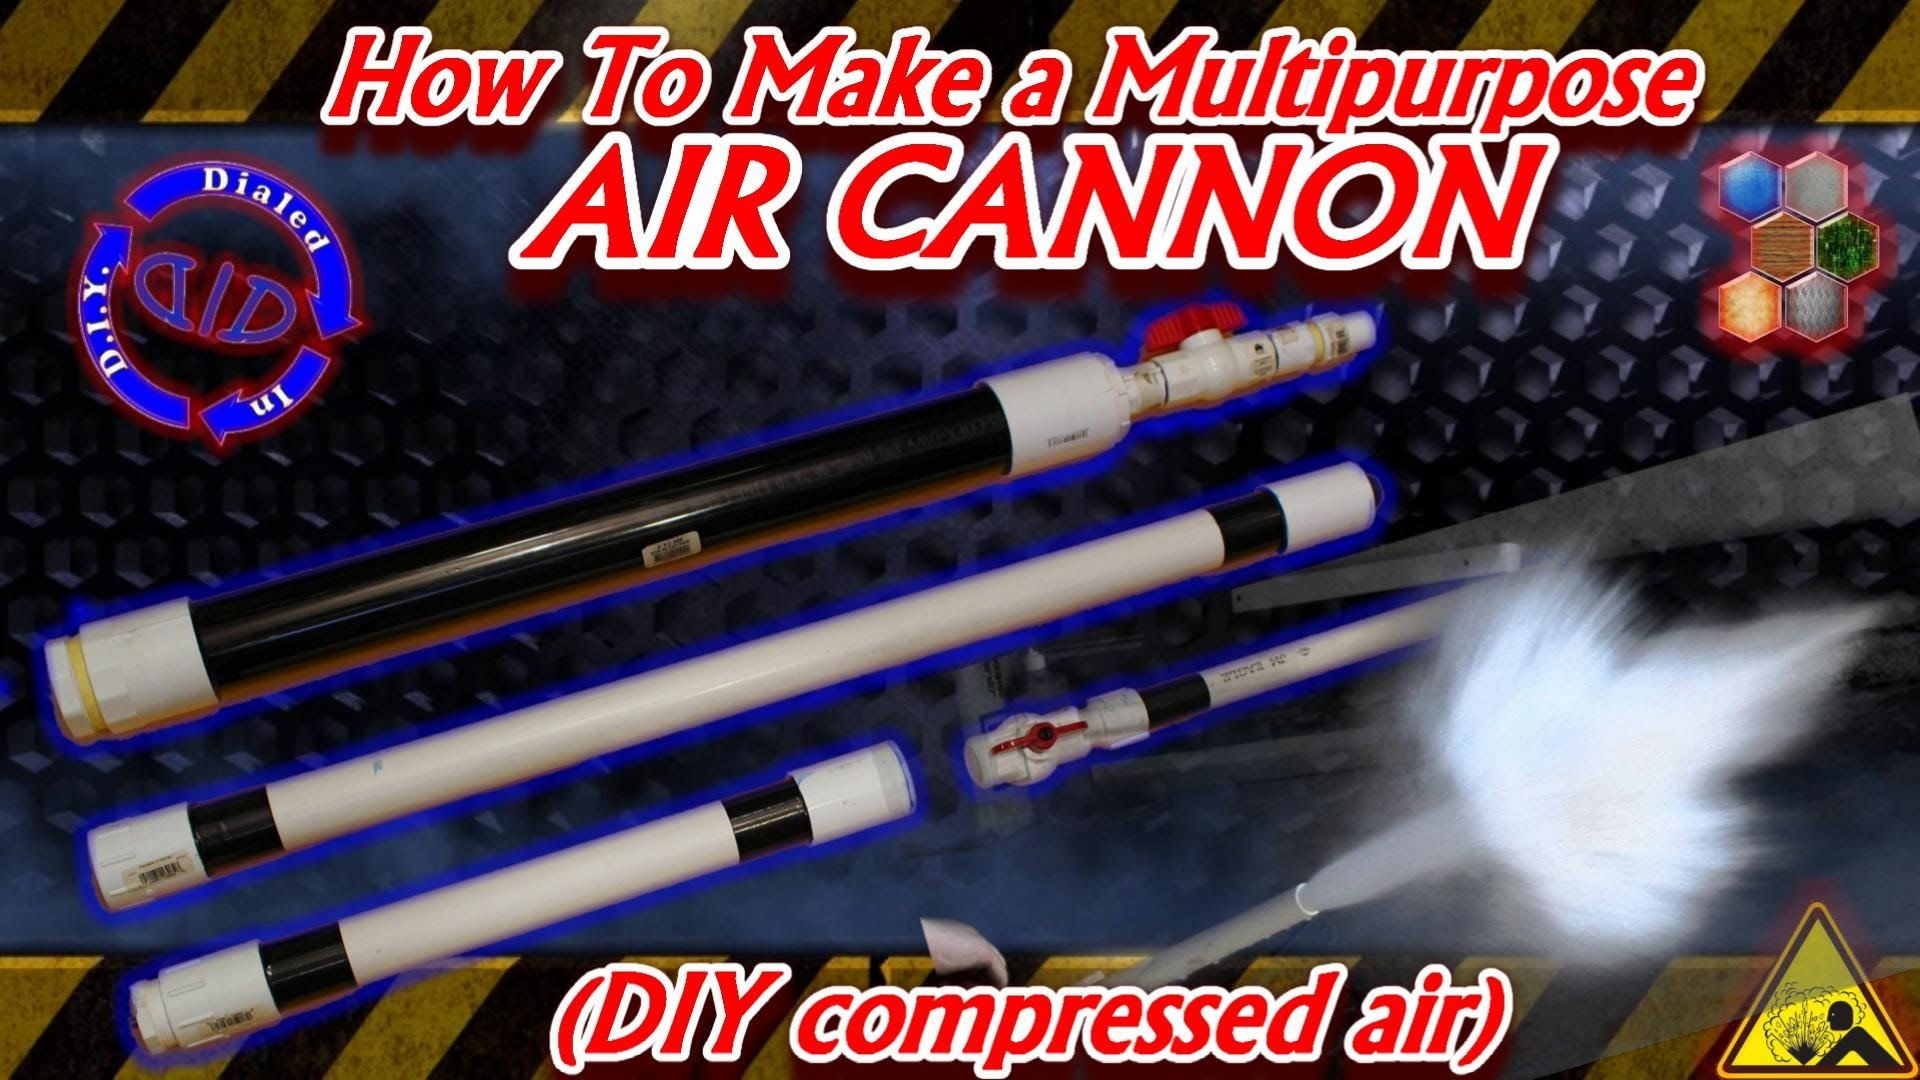 How to make a Multipurpose Air Cannon DIY compressed air